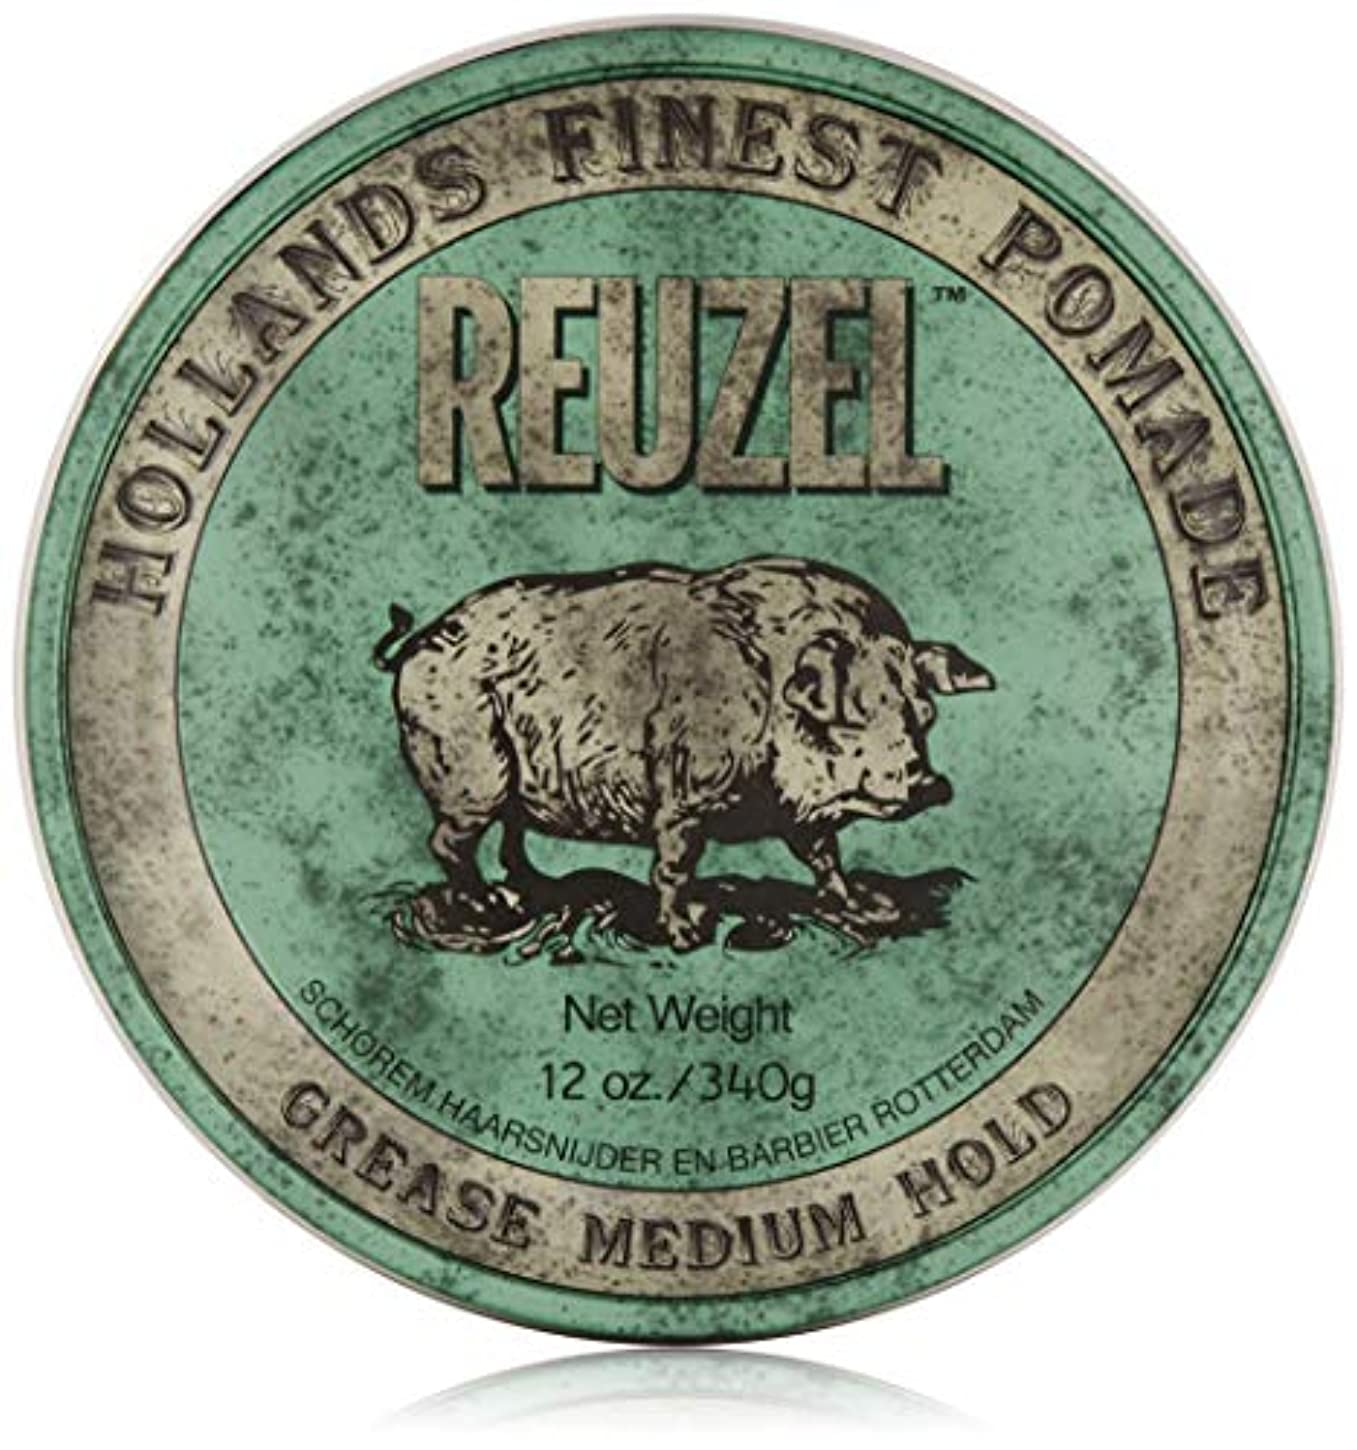 昇るディンカルビルかるREUZEL Grease Medium Hold Pomade Hog, Green, 12 oz. by REUZEL